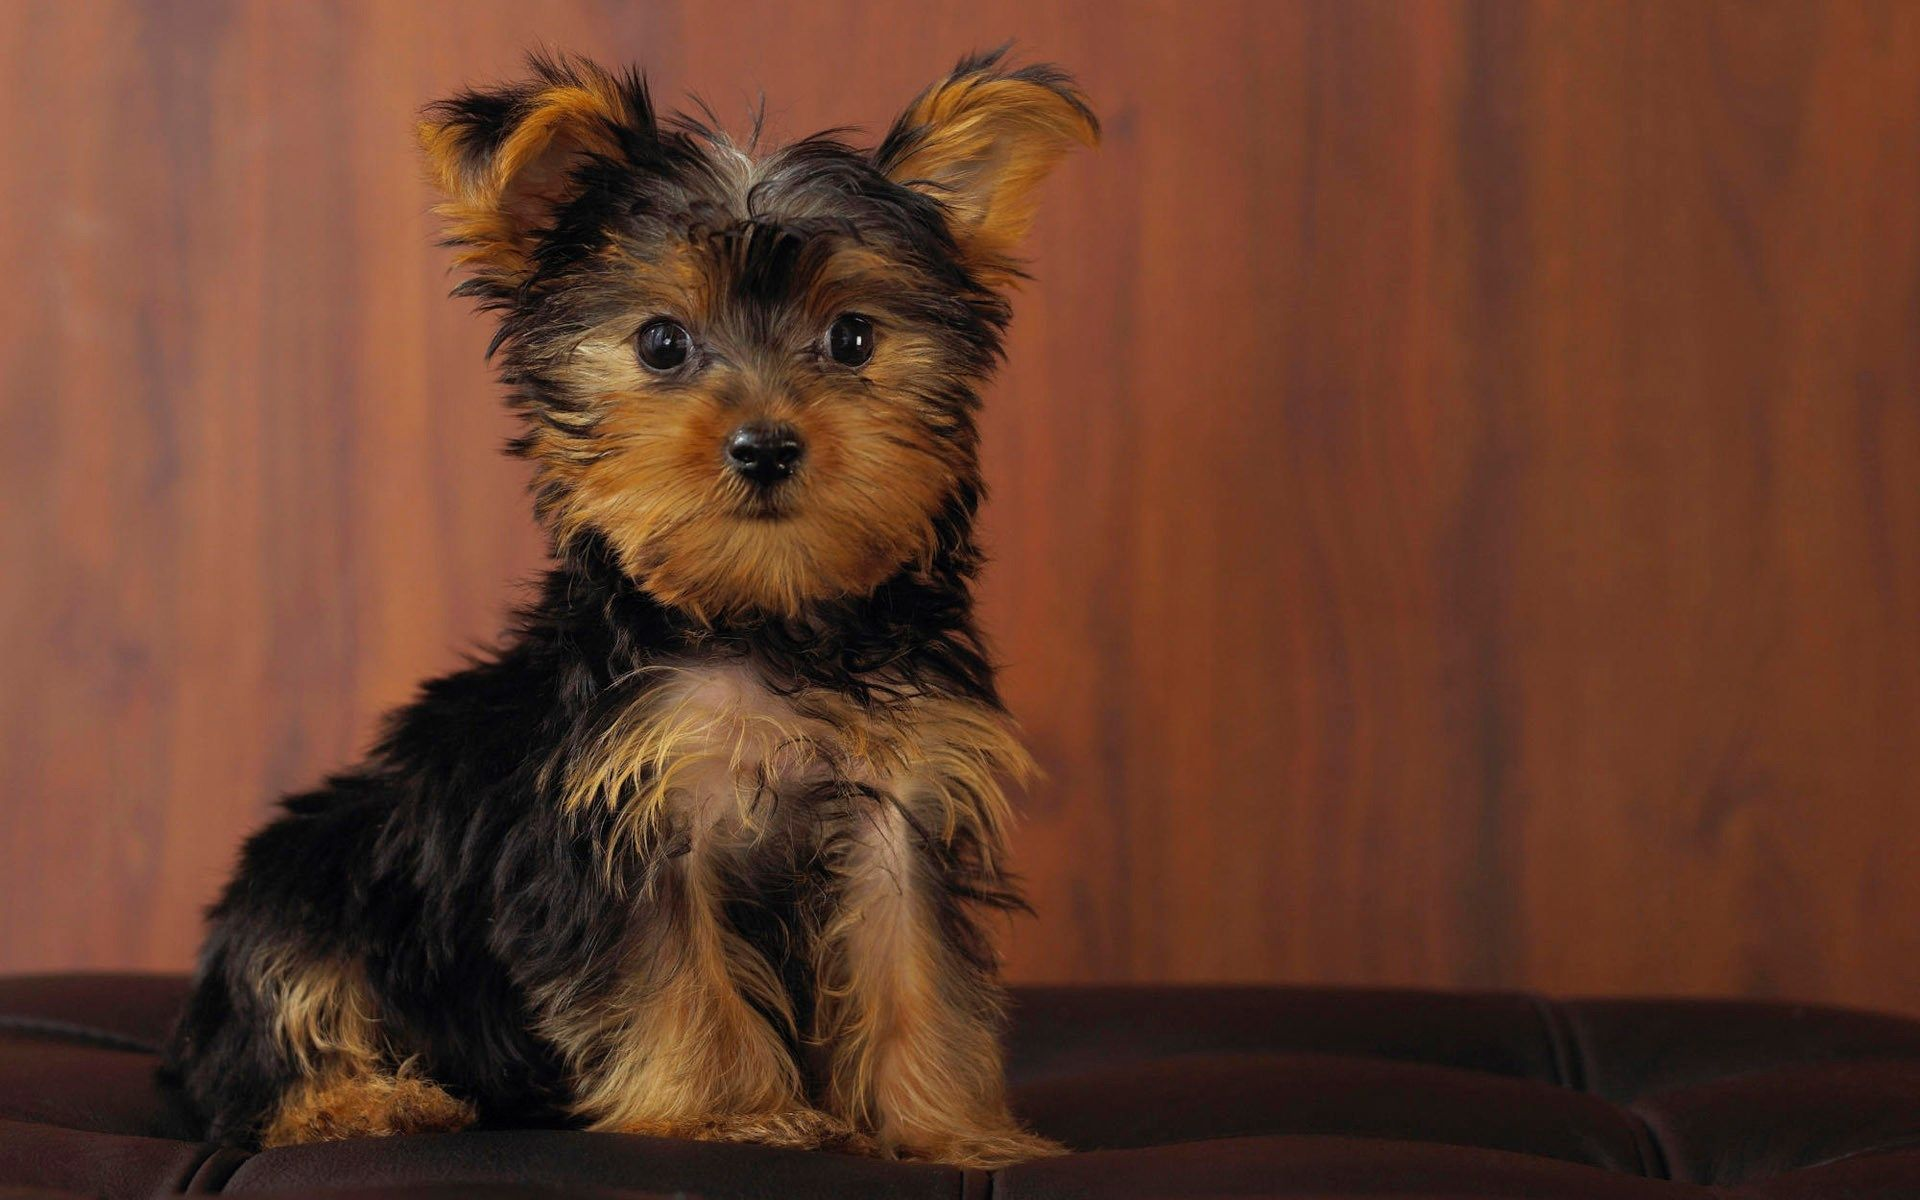 High Resolution Wallpapers Widescreen Yorkshire Terrier 1920x1200 248 Kb Teacup Yorkie Puppy Yorkie Dogs Yorkie Puppy